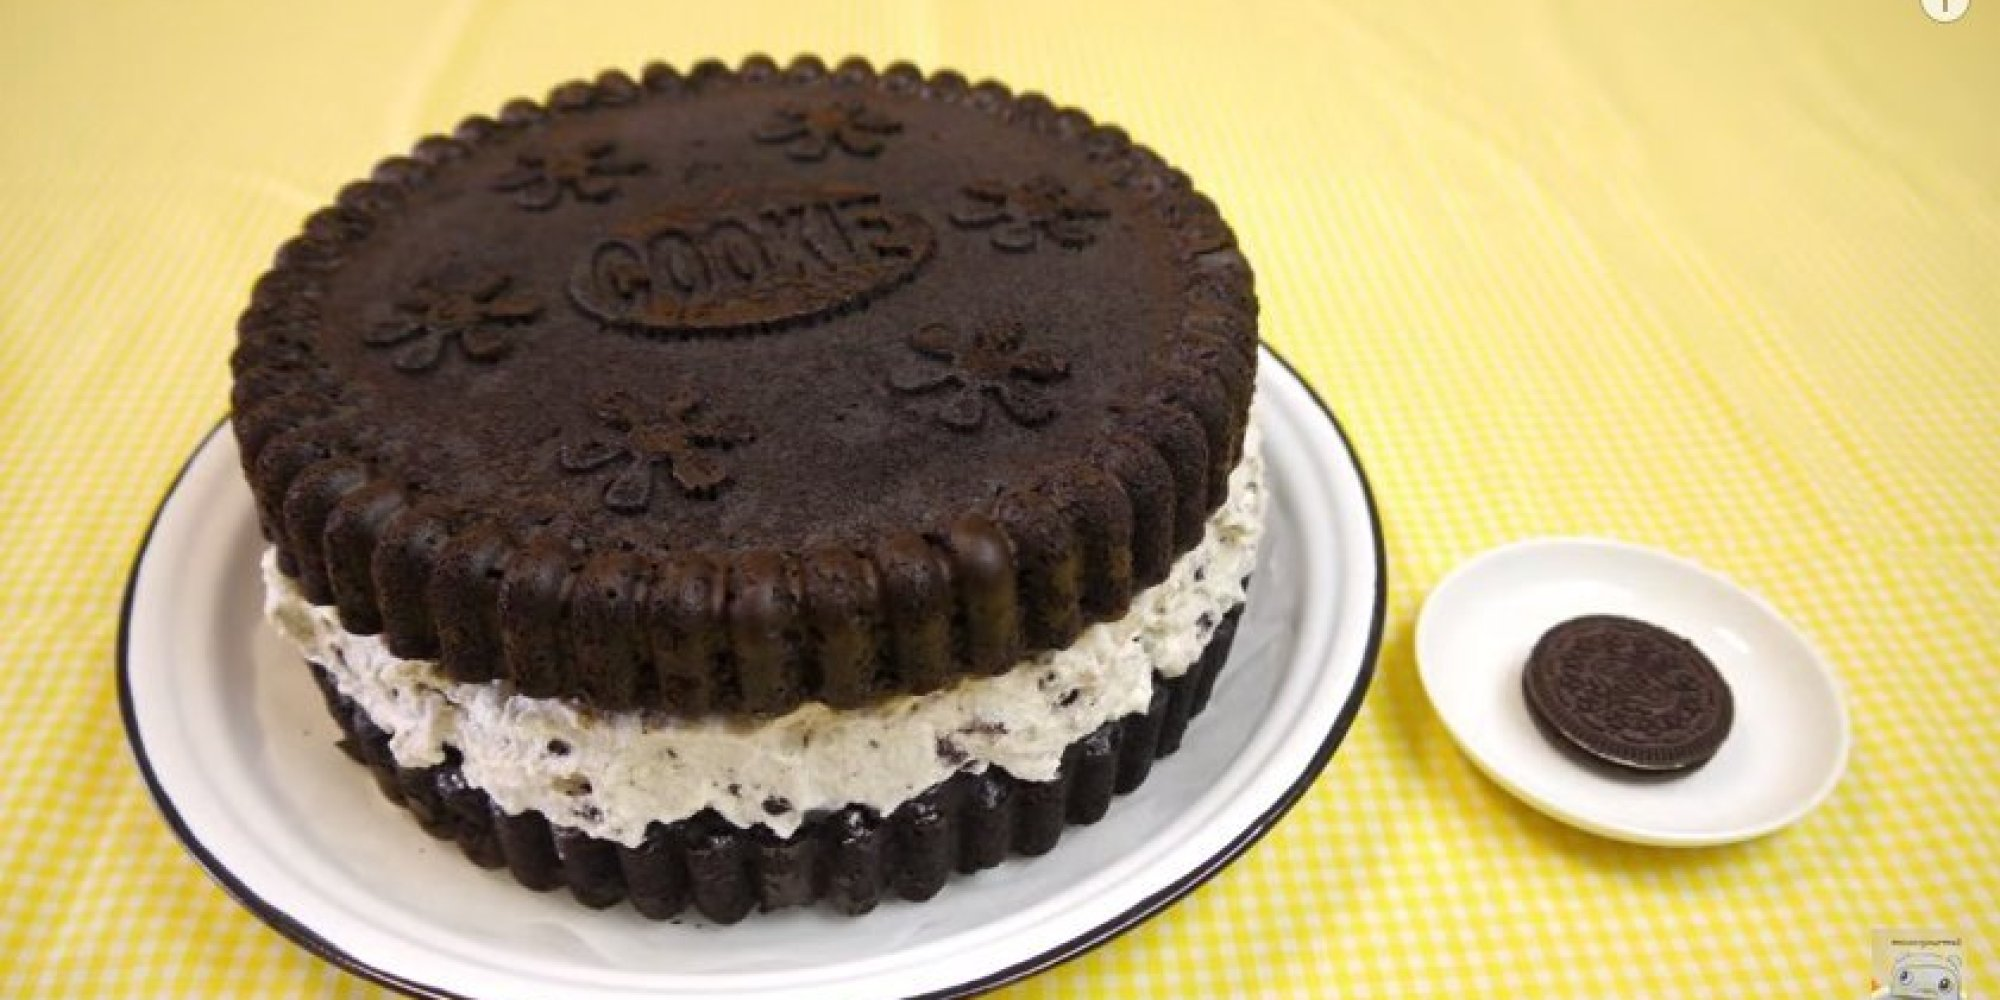 How To Make A Giant Oreo Cake At Home (Or Just Watch In Awe)